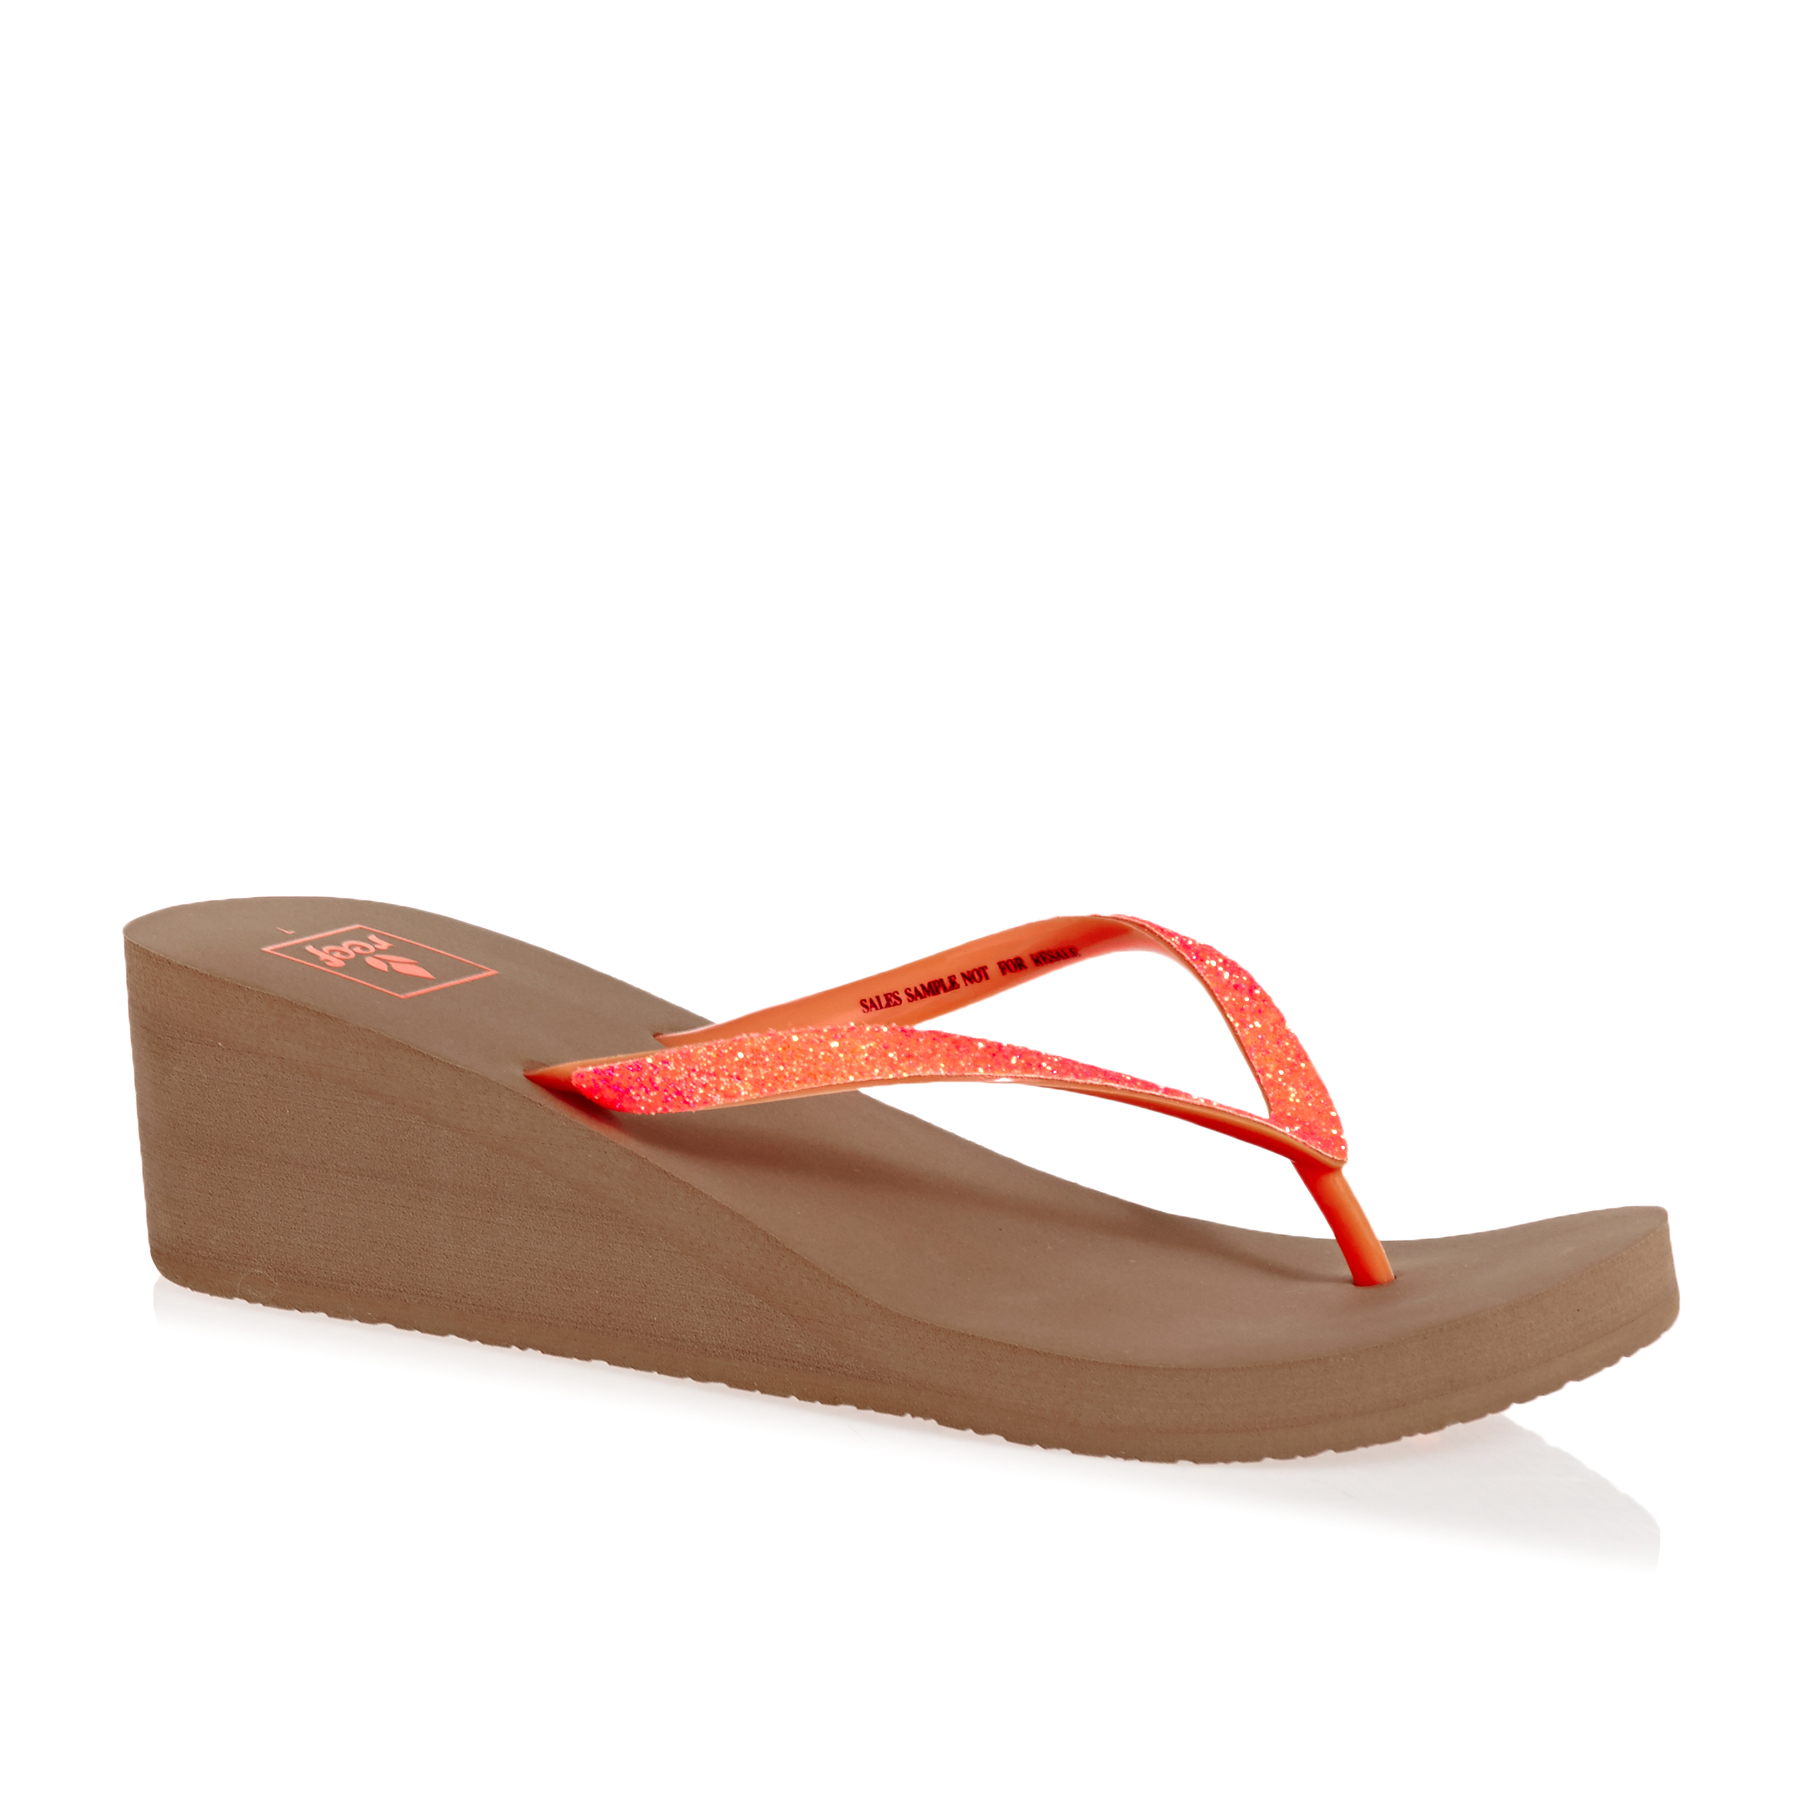 Reef Krystal Star Womens Sandals | Free Delivery* on All Orders